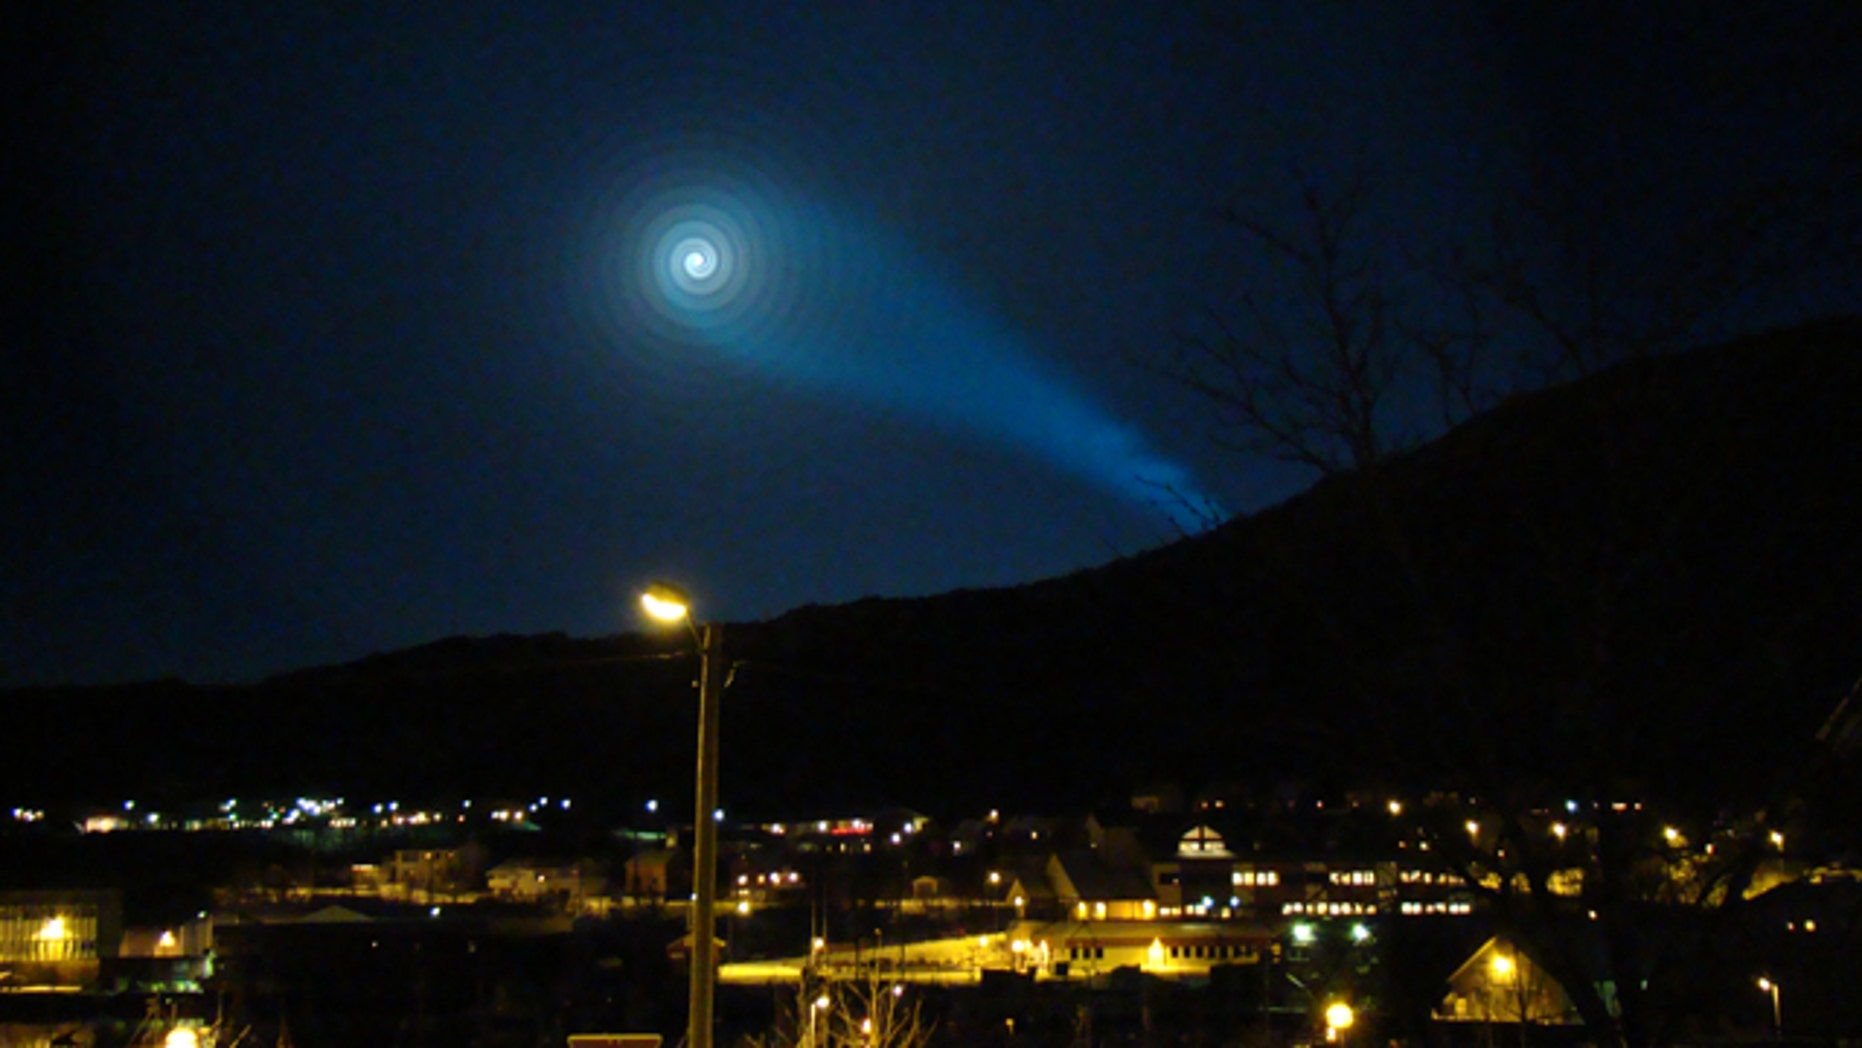 A strange light phenomenon is seen in the night sky above Skjervoy in northern Norway early Wednesday Dec. 9, 2009. According to some reports, the unexplained light may have been caused by the failure of a new Russian anti-submarine-based intercontinental missile which was being tested across the Norwegian-Russian border.